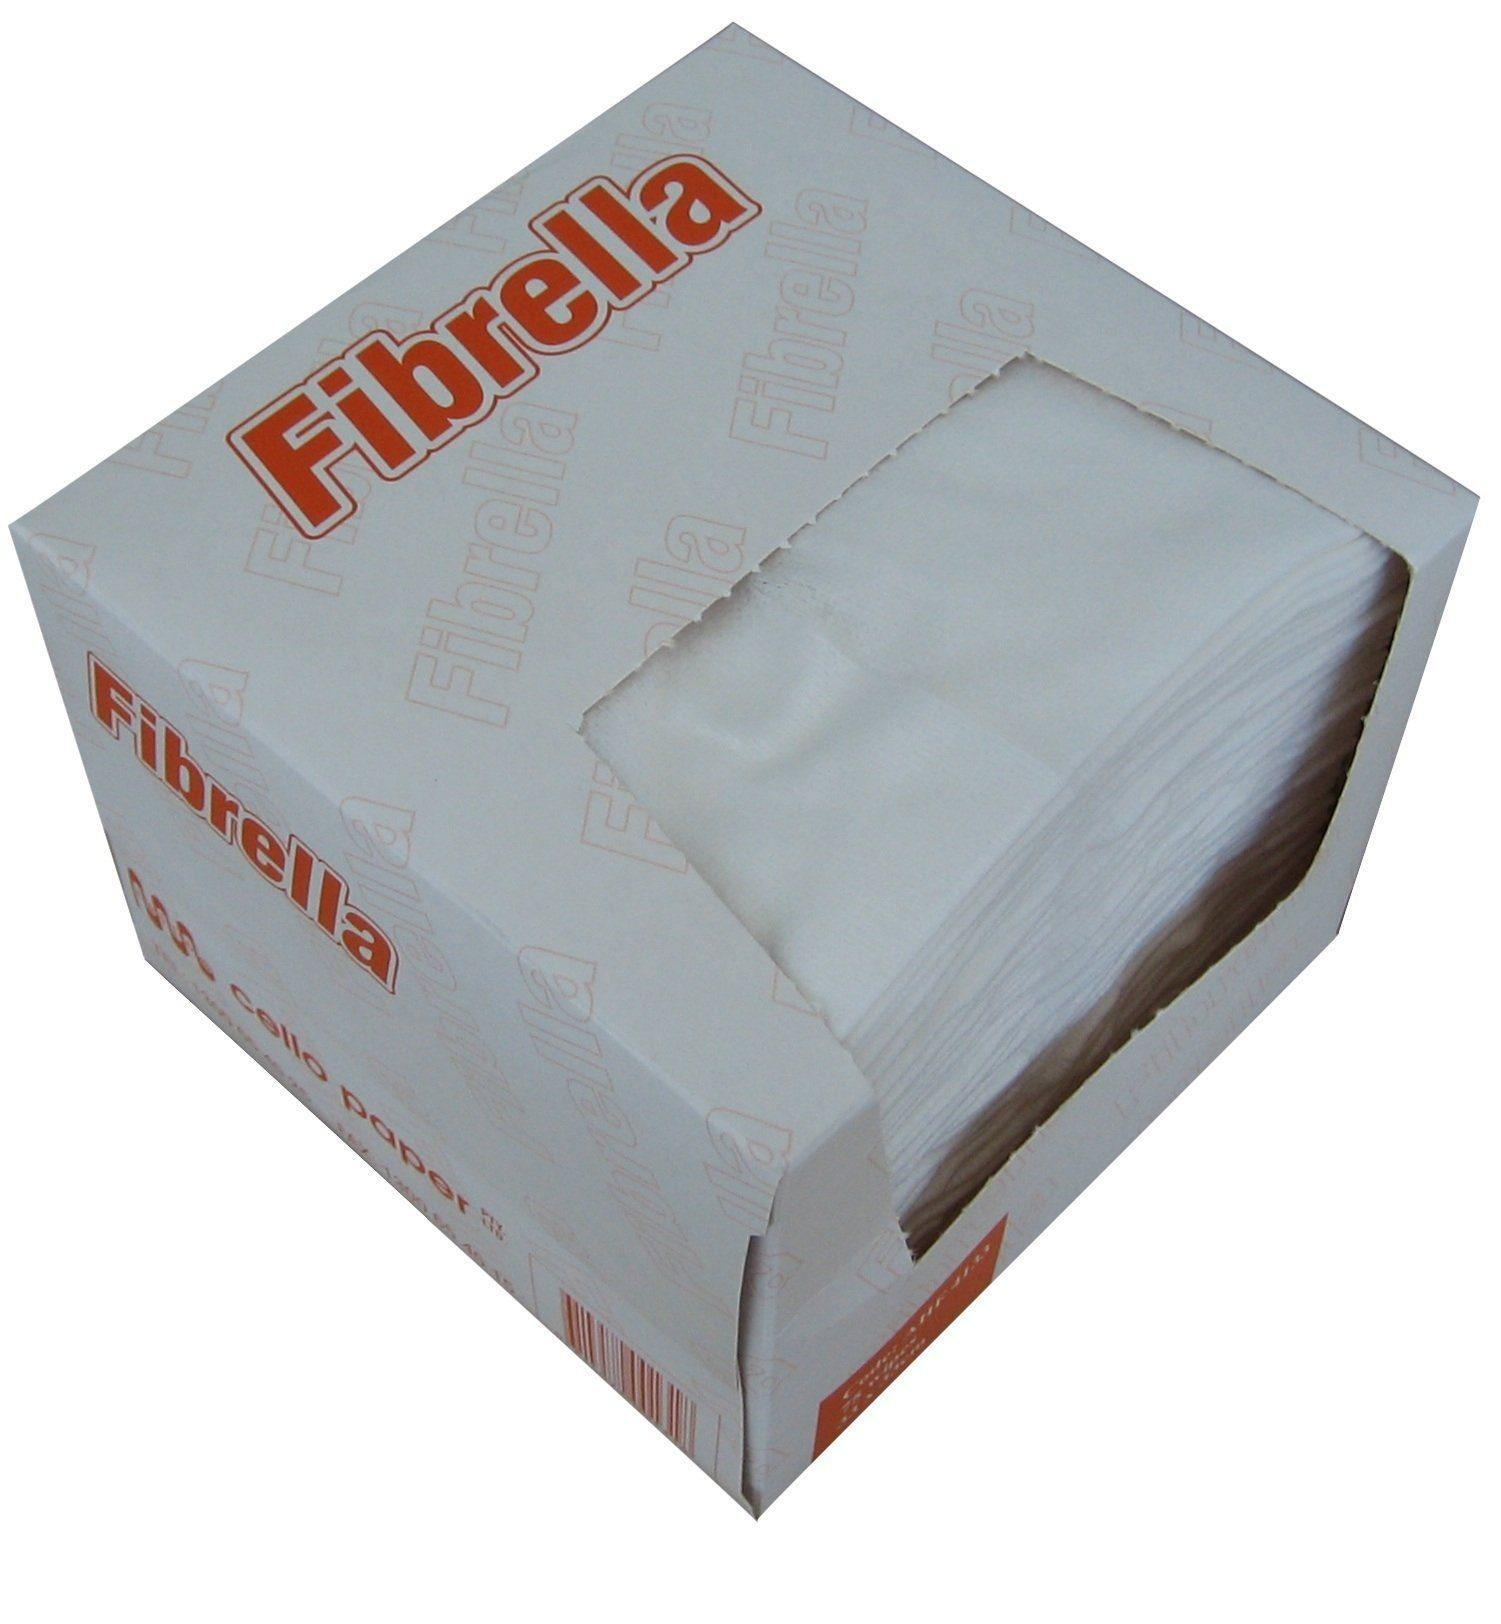 Fibrella Q Fold Soft Cloth 33x33cm Box 75 - Medsales